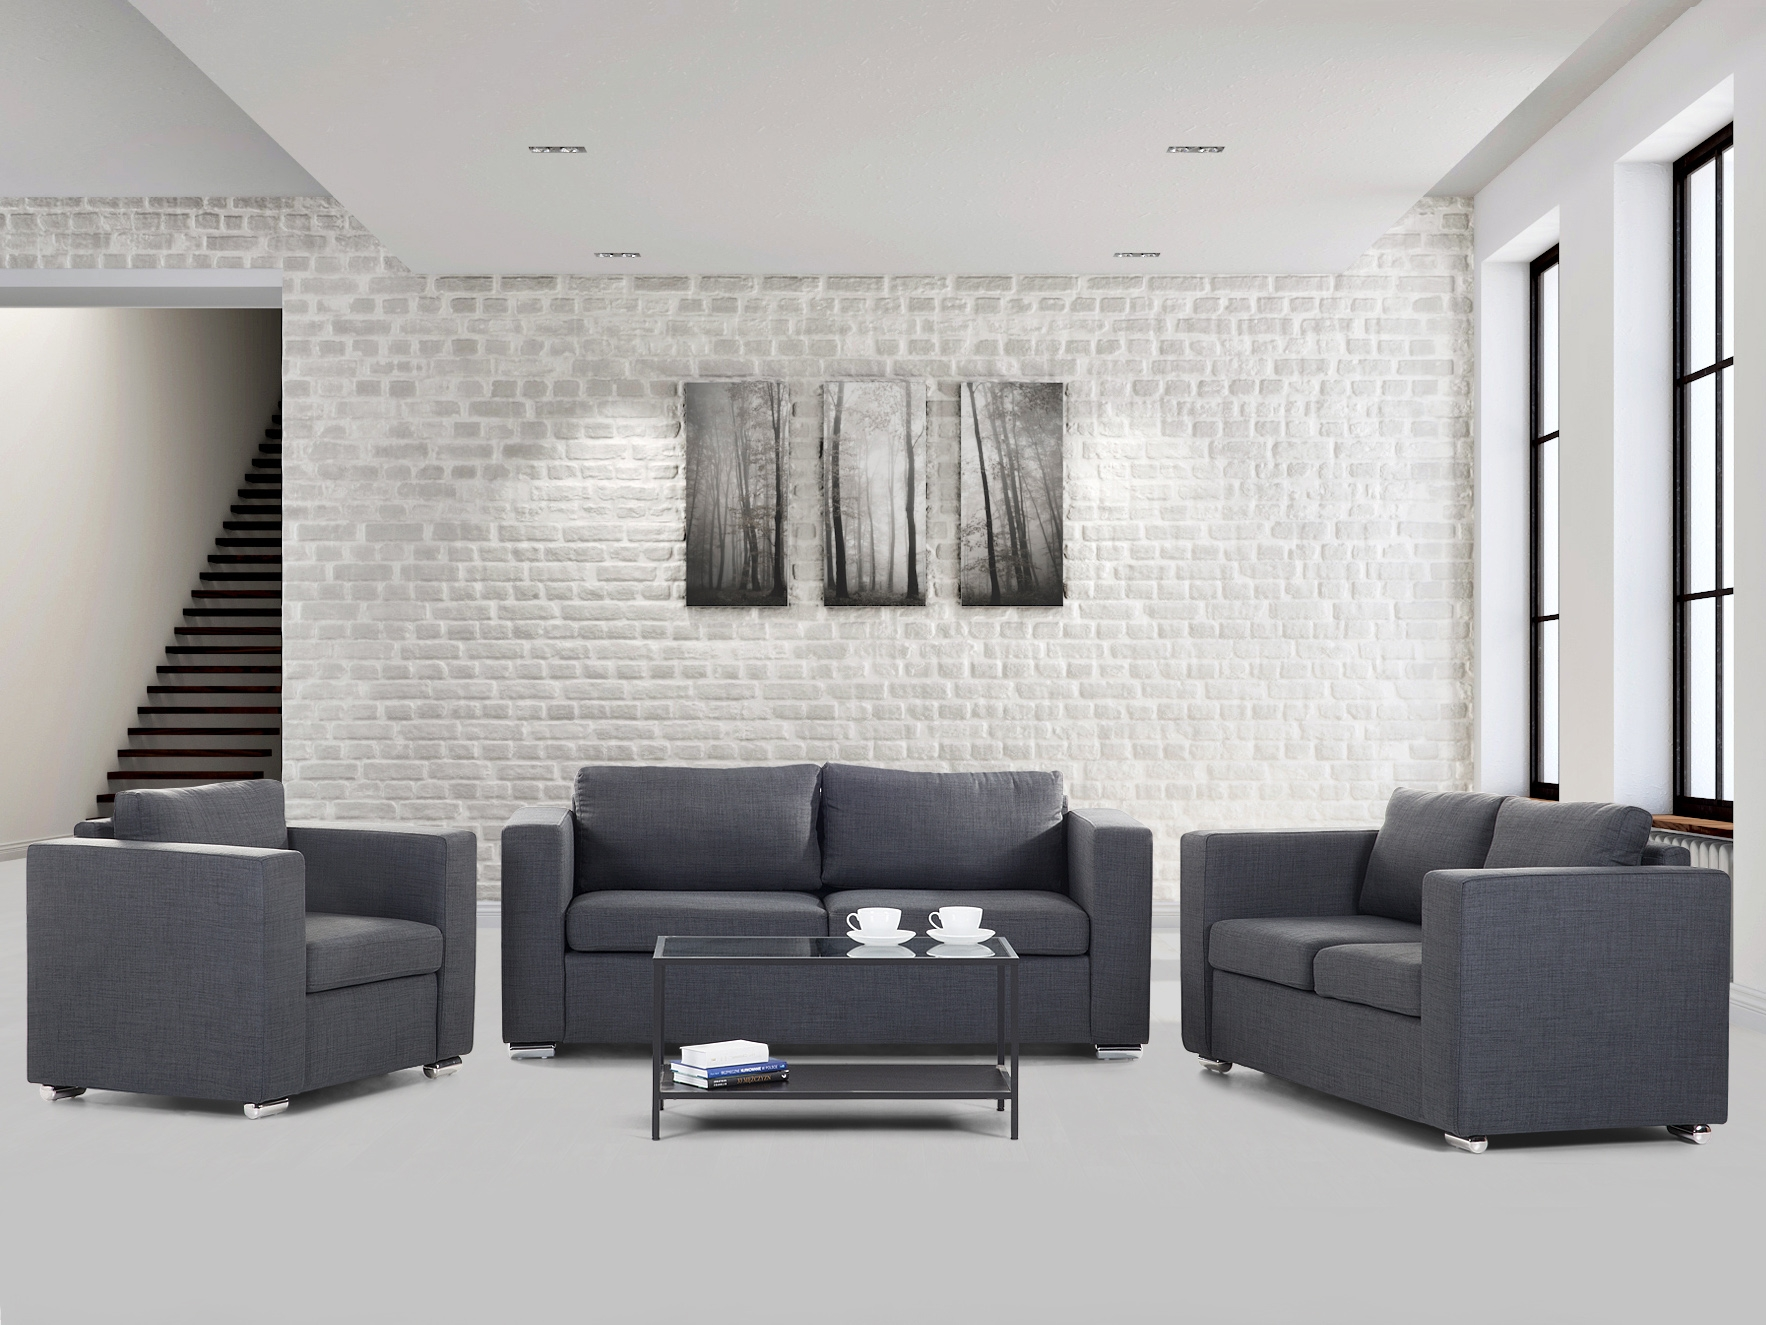 Image Is Loading Dark-grey-Couch-Suite-Settee-Sofa-set-3-